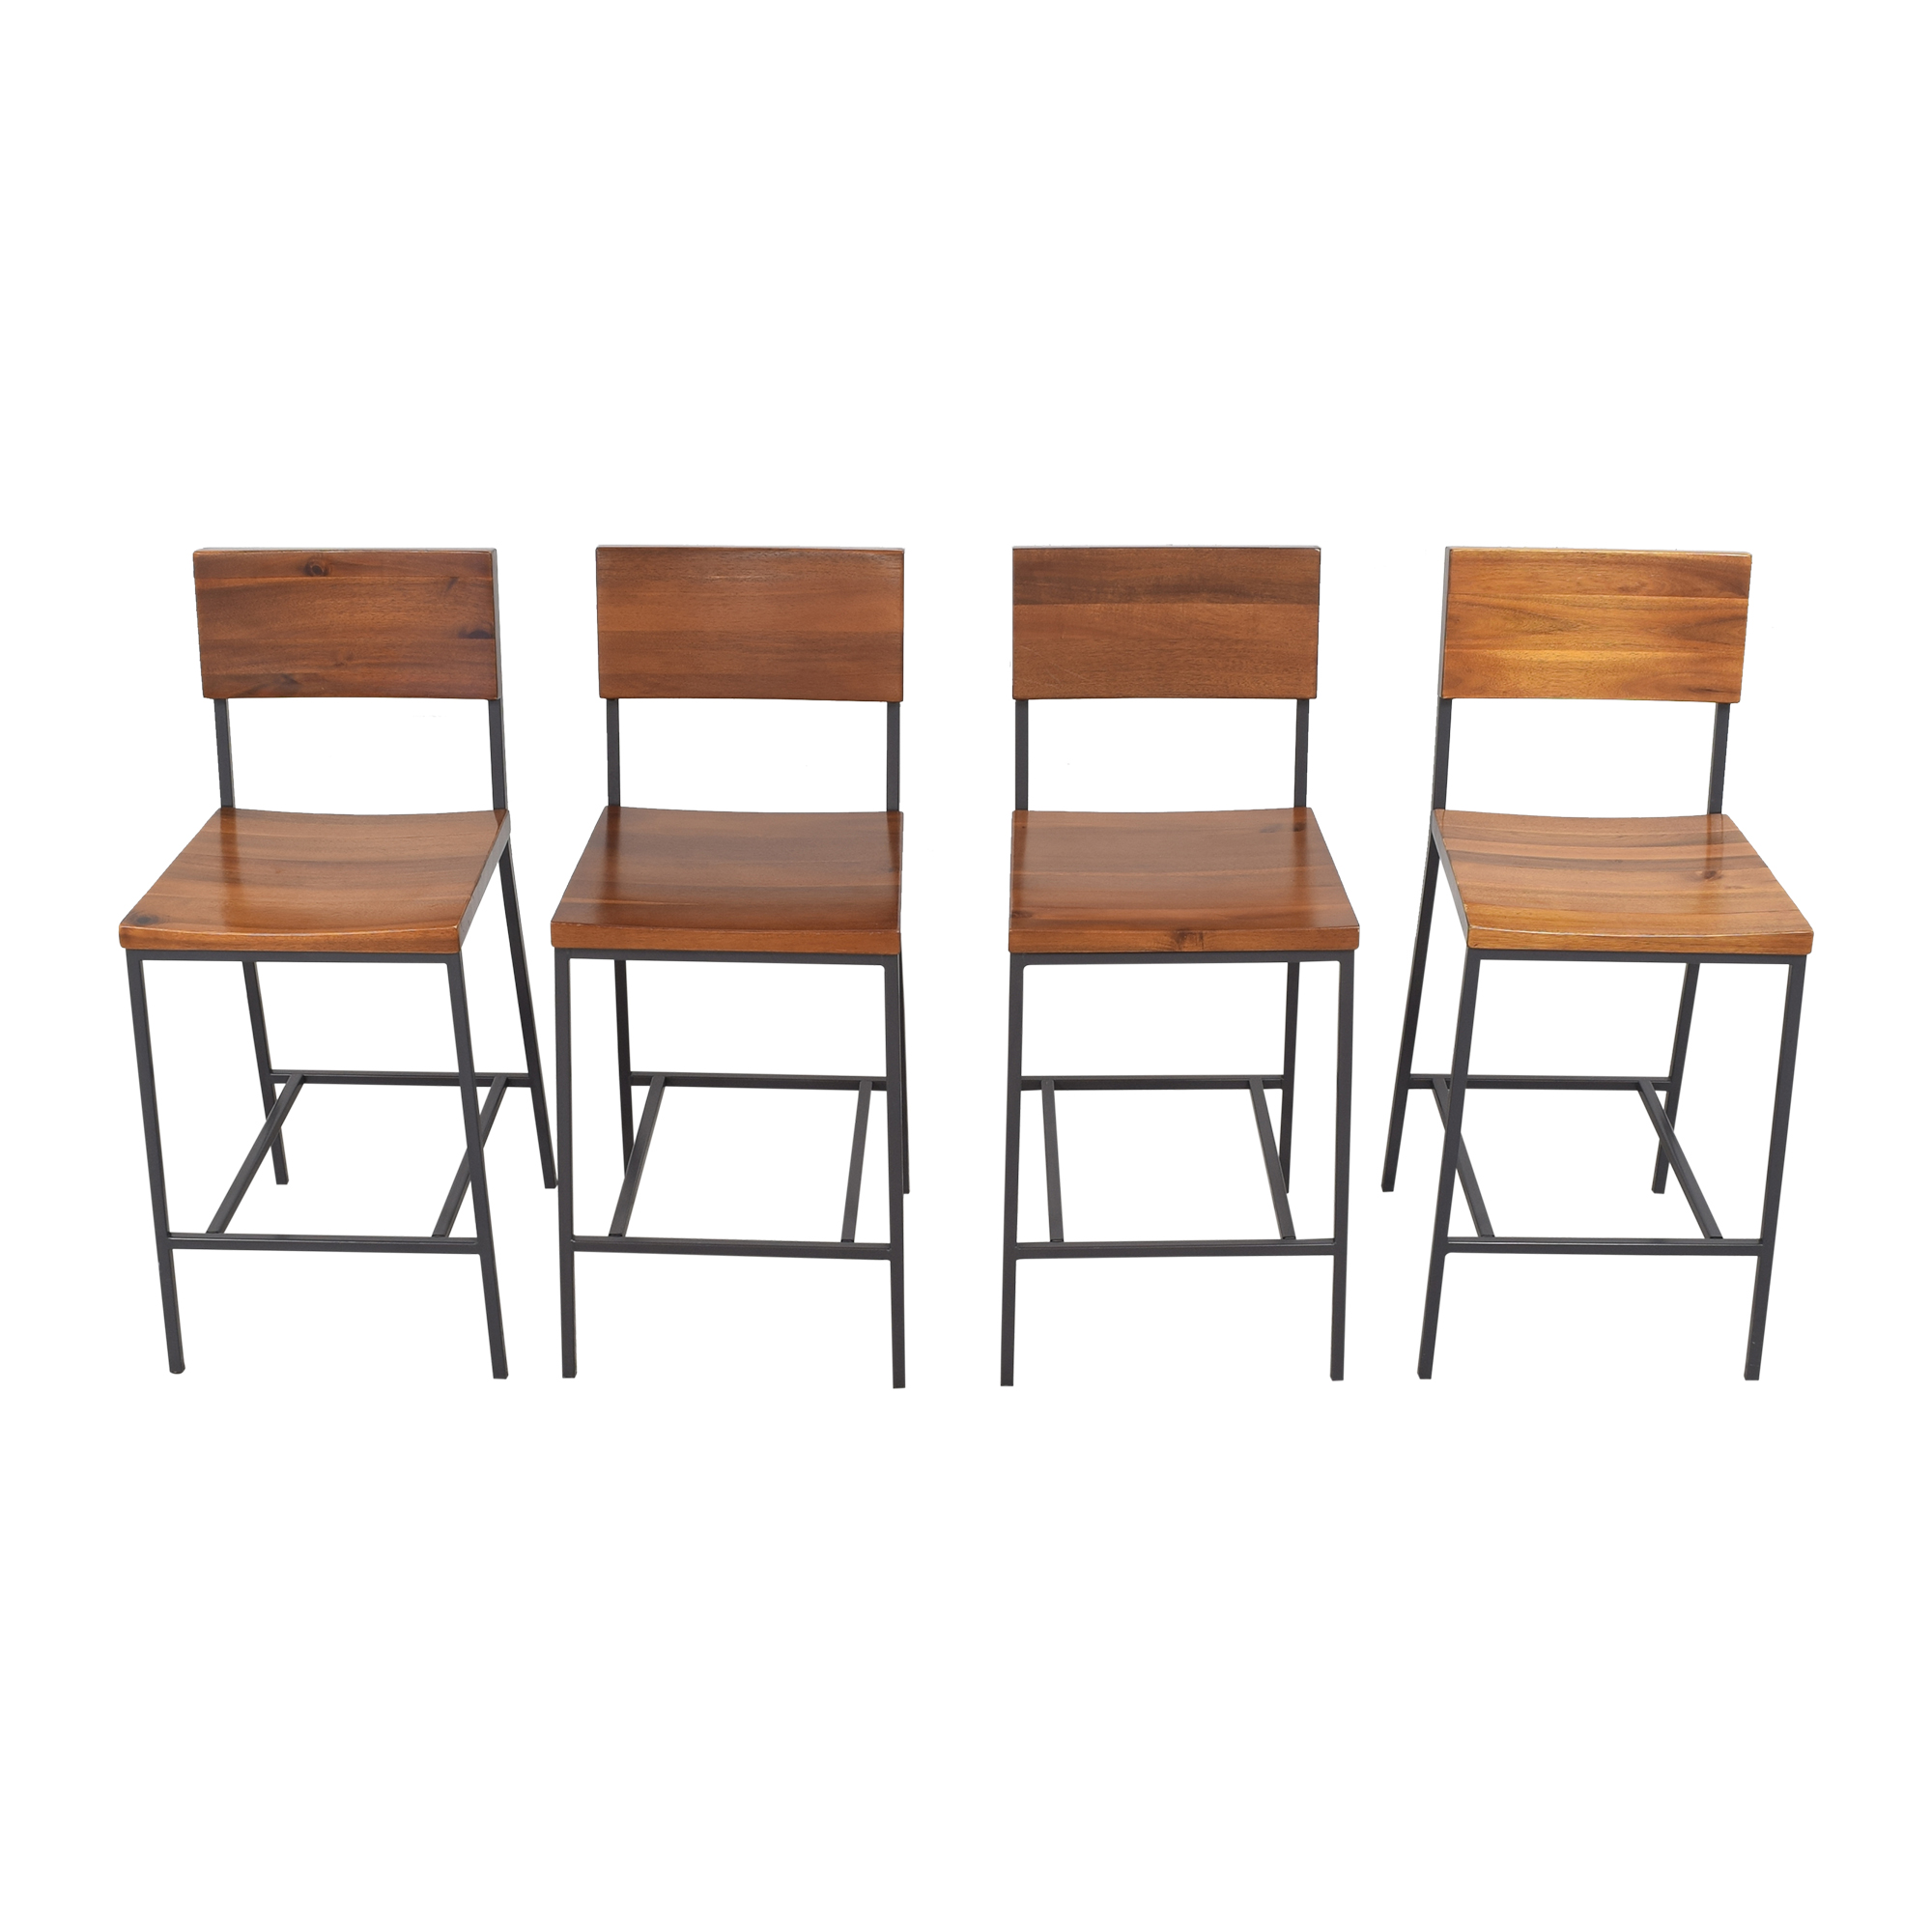 West Elm Rustic Counter Stools sale